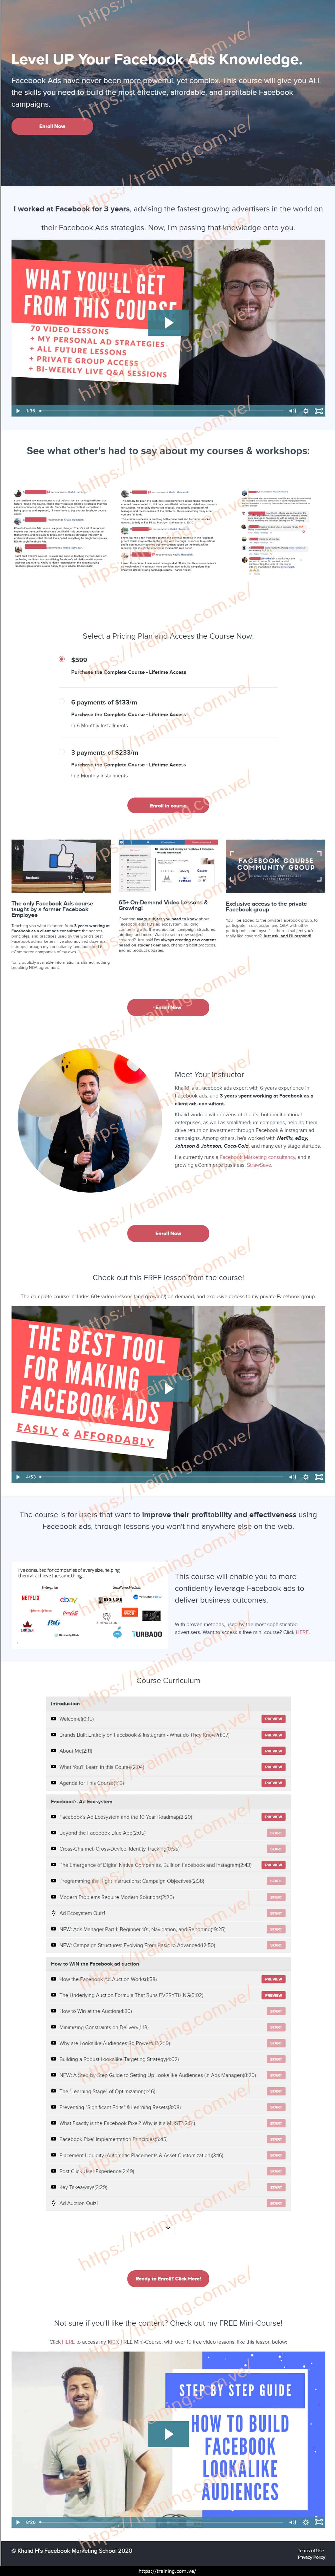 Facebook Ads Training - Lessons from a Former Facebooker by Khalid Hamadeh Sales Page